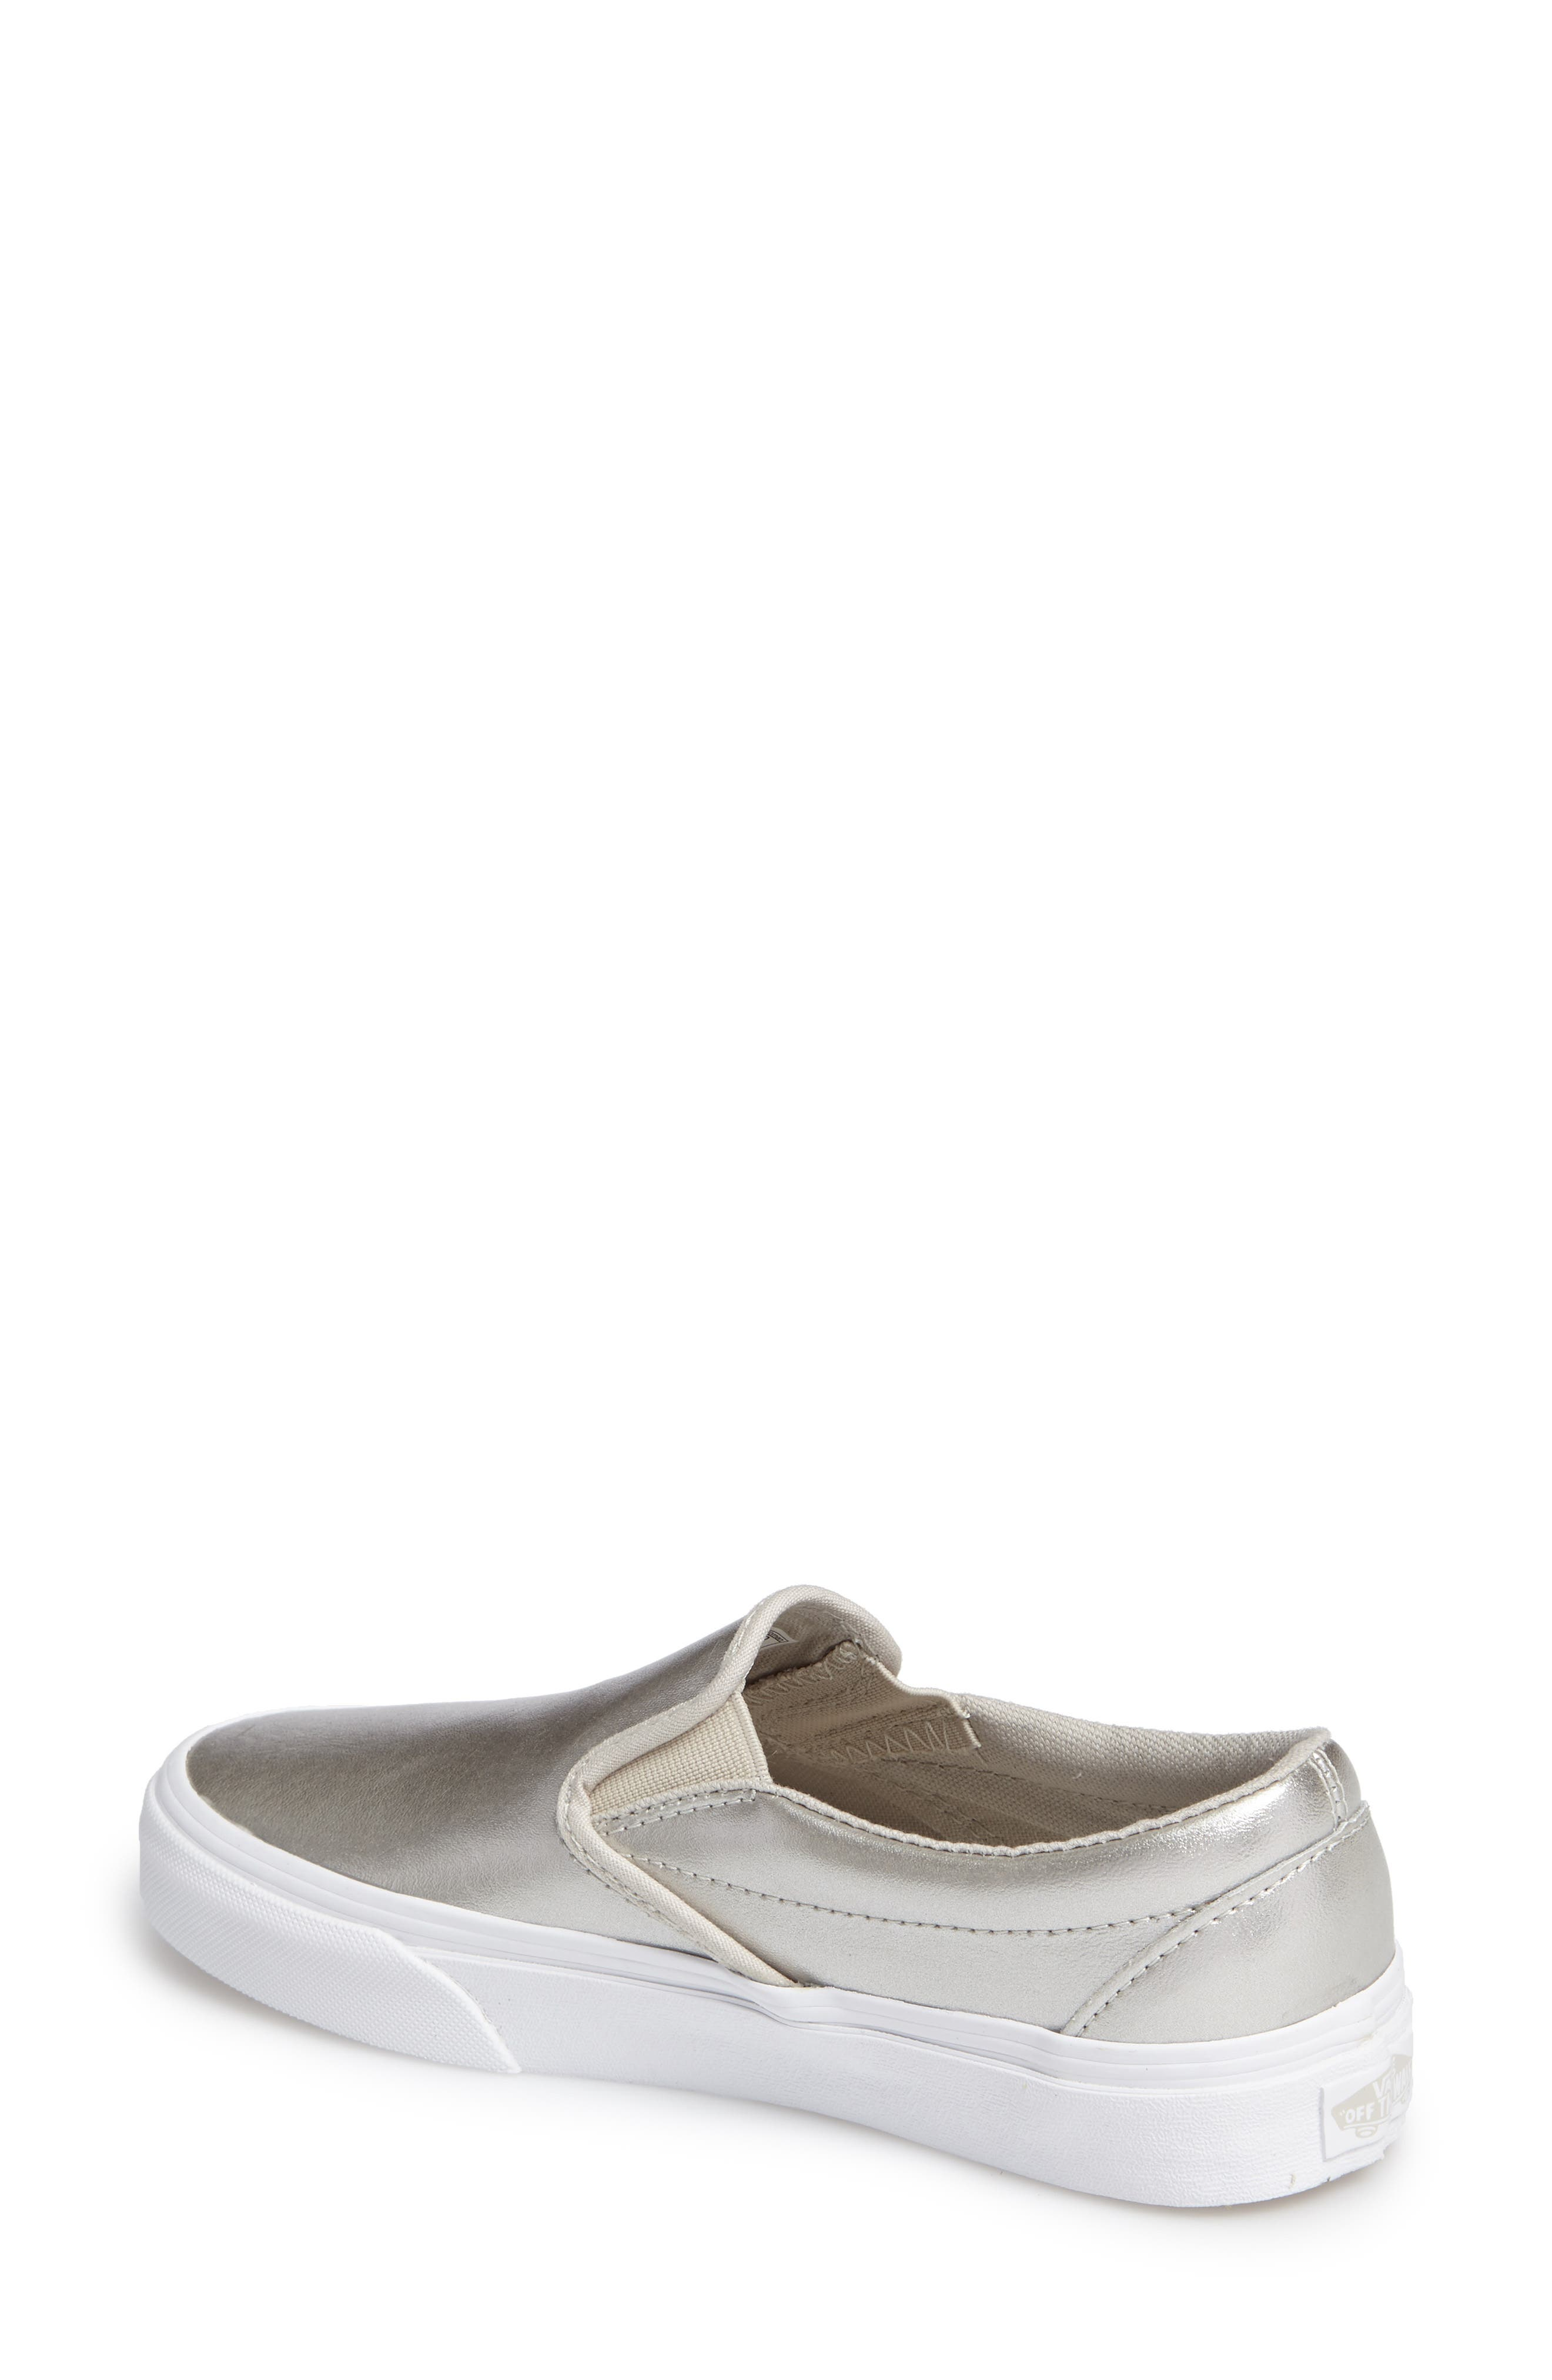 Classic Slip-On Sneaker,                             Alternate thumbnail 144, color,